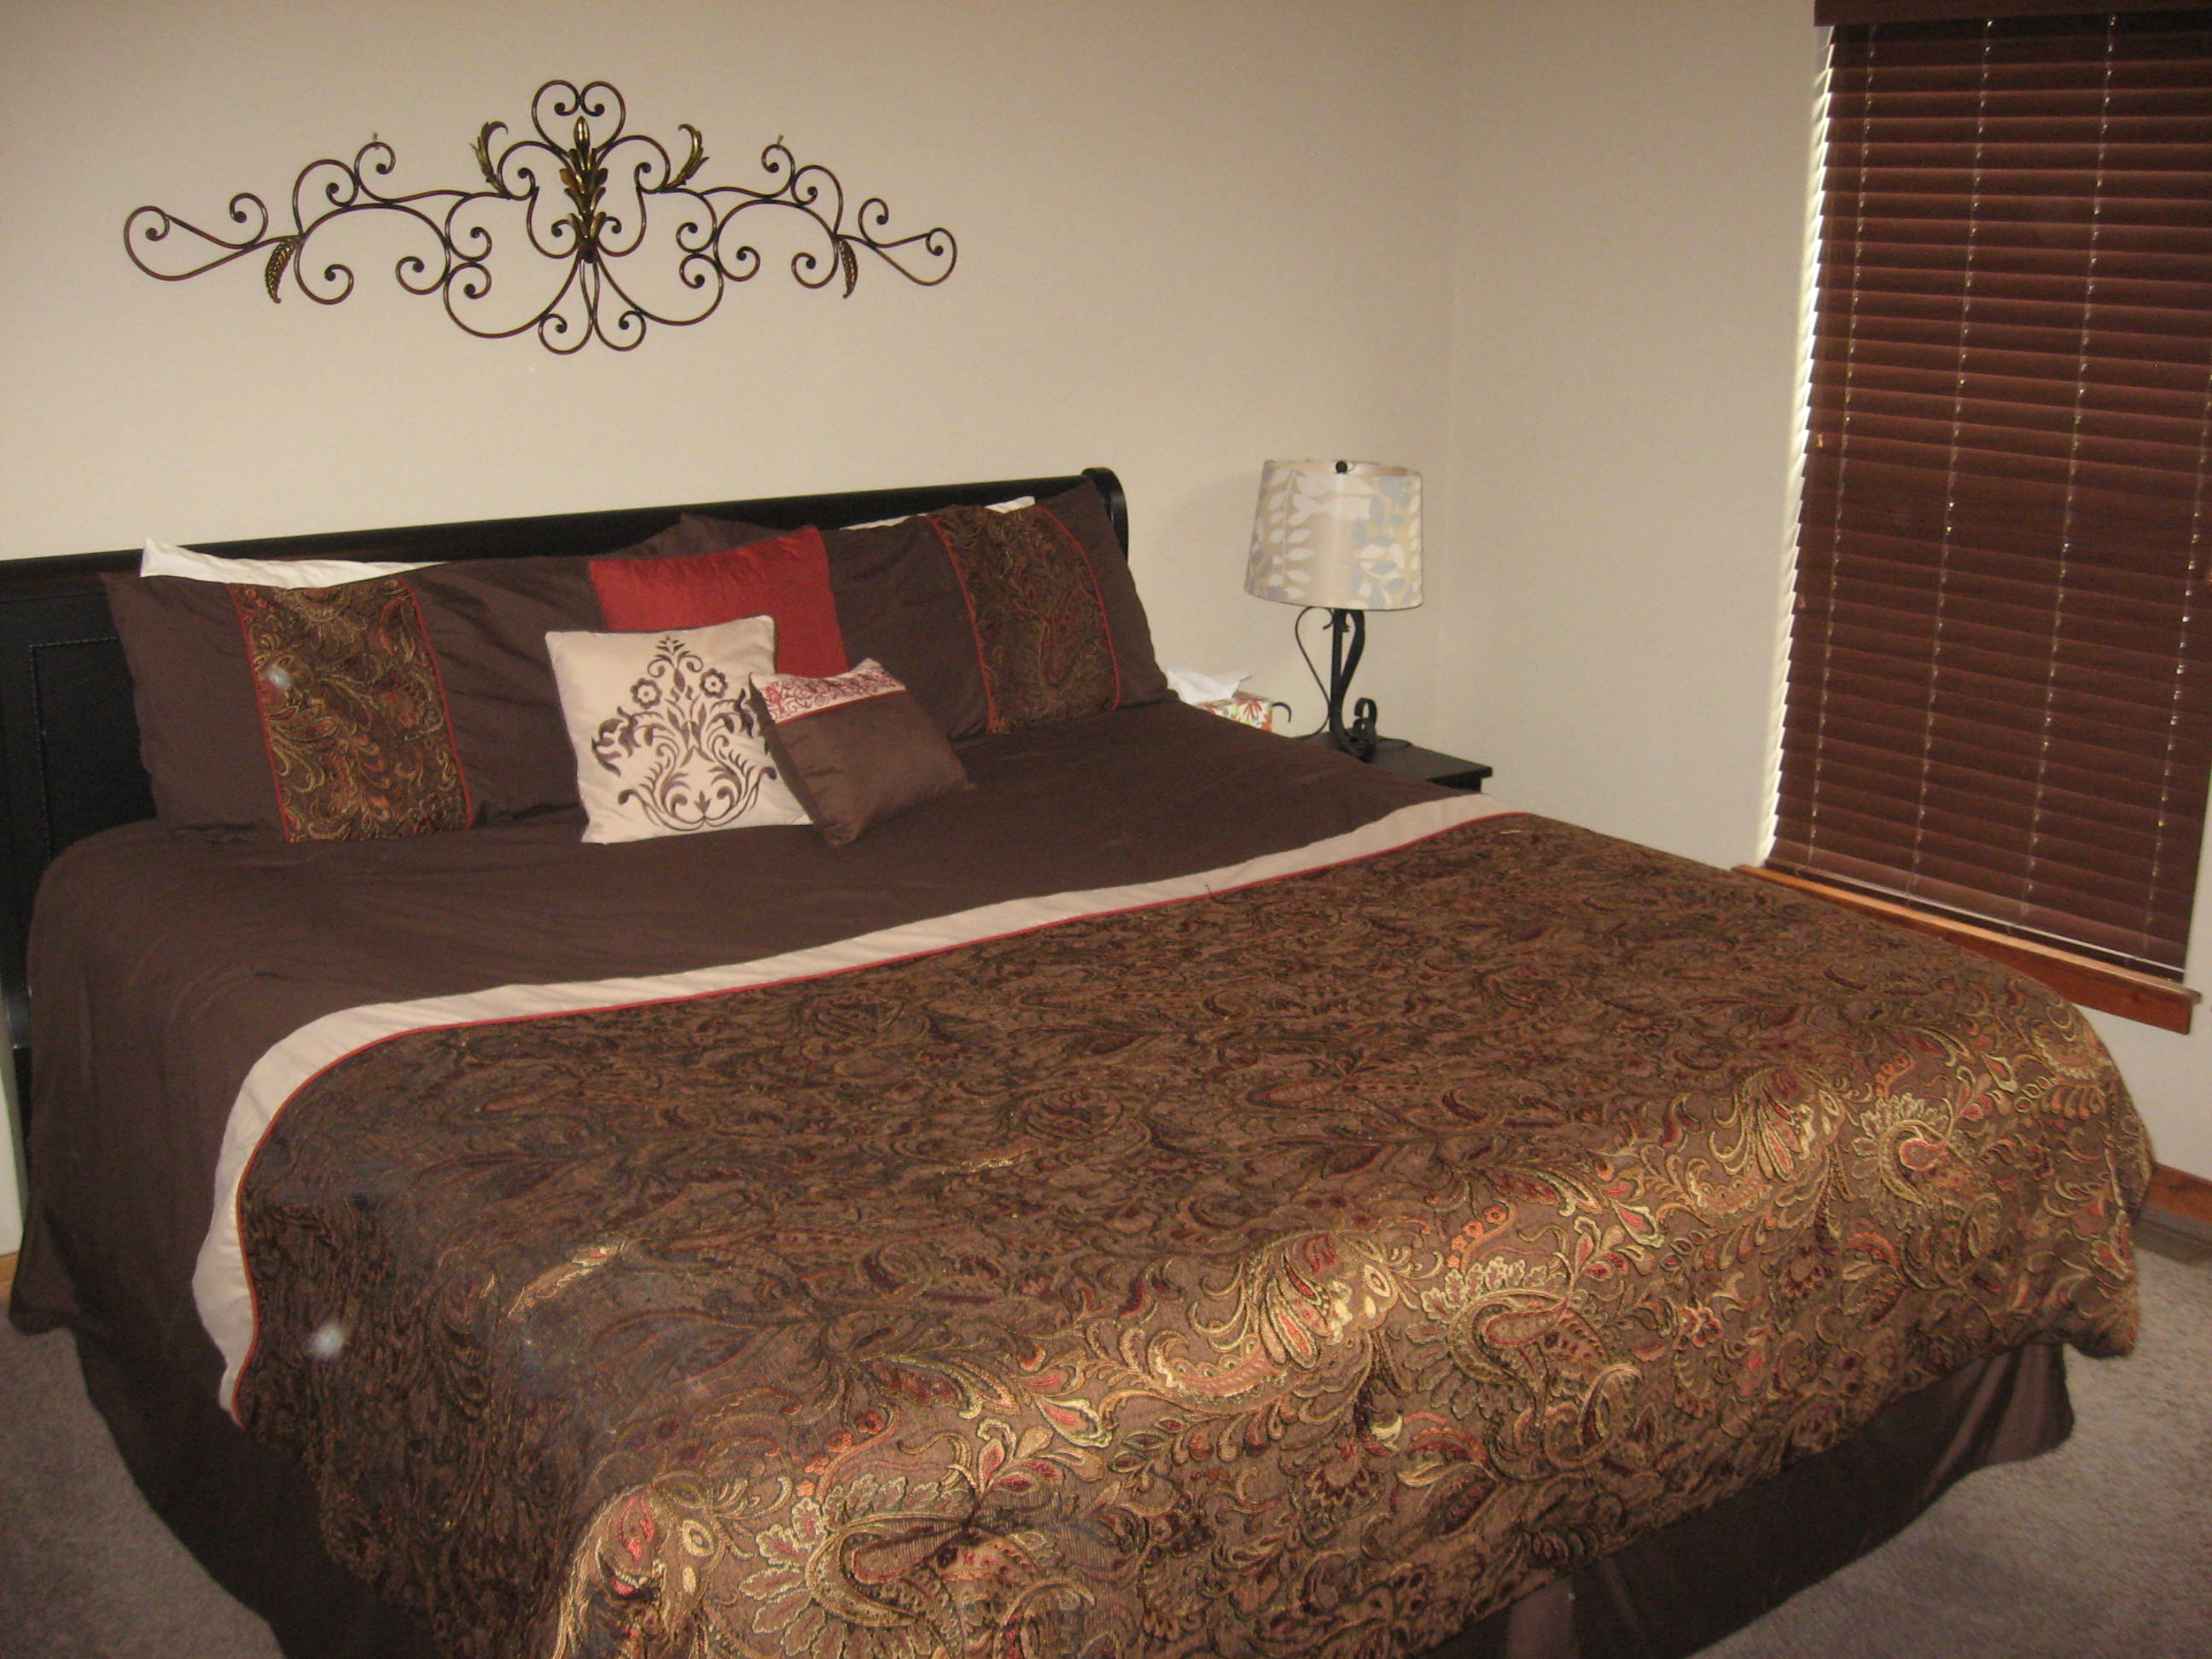 Branson Canyon Vacation Rentals GAL Granny room